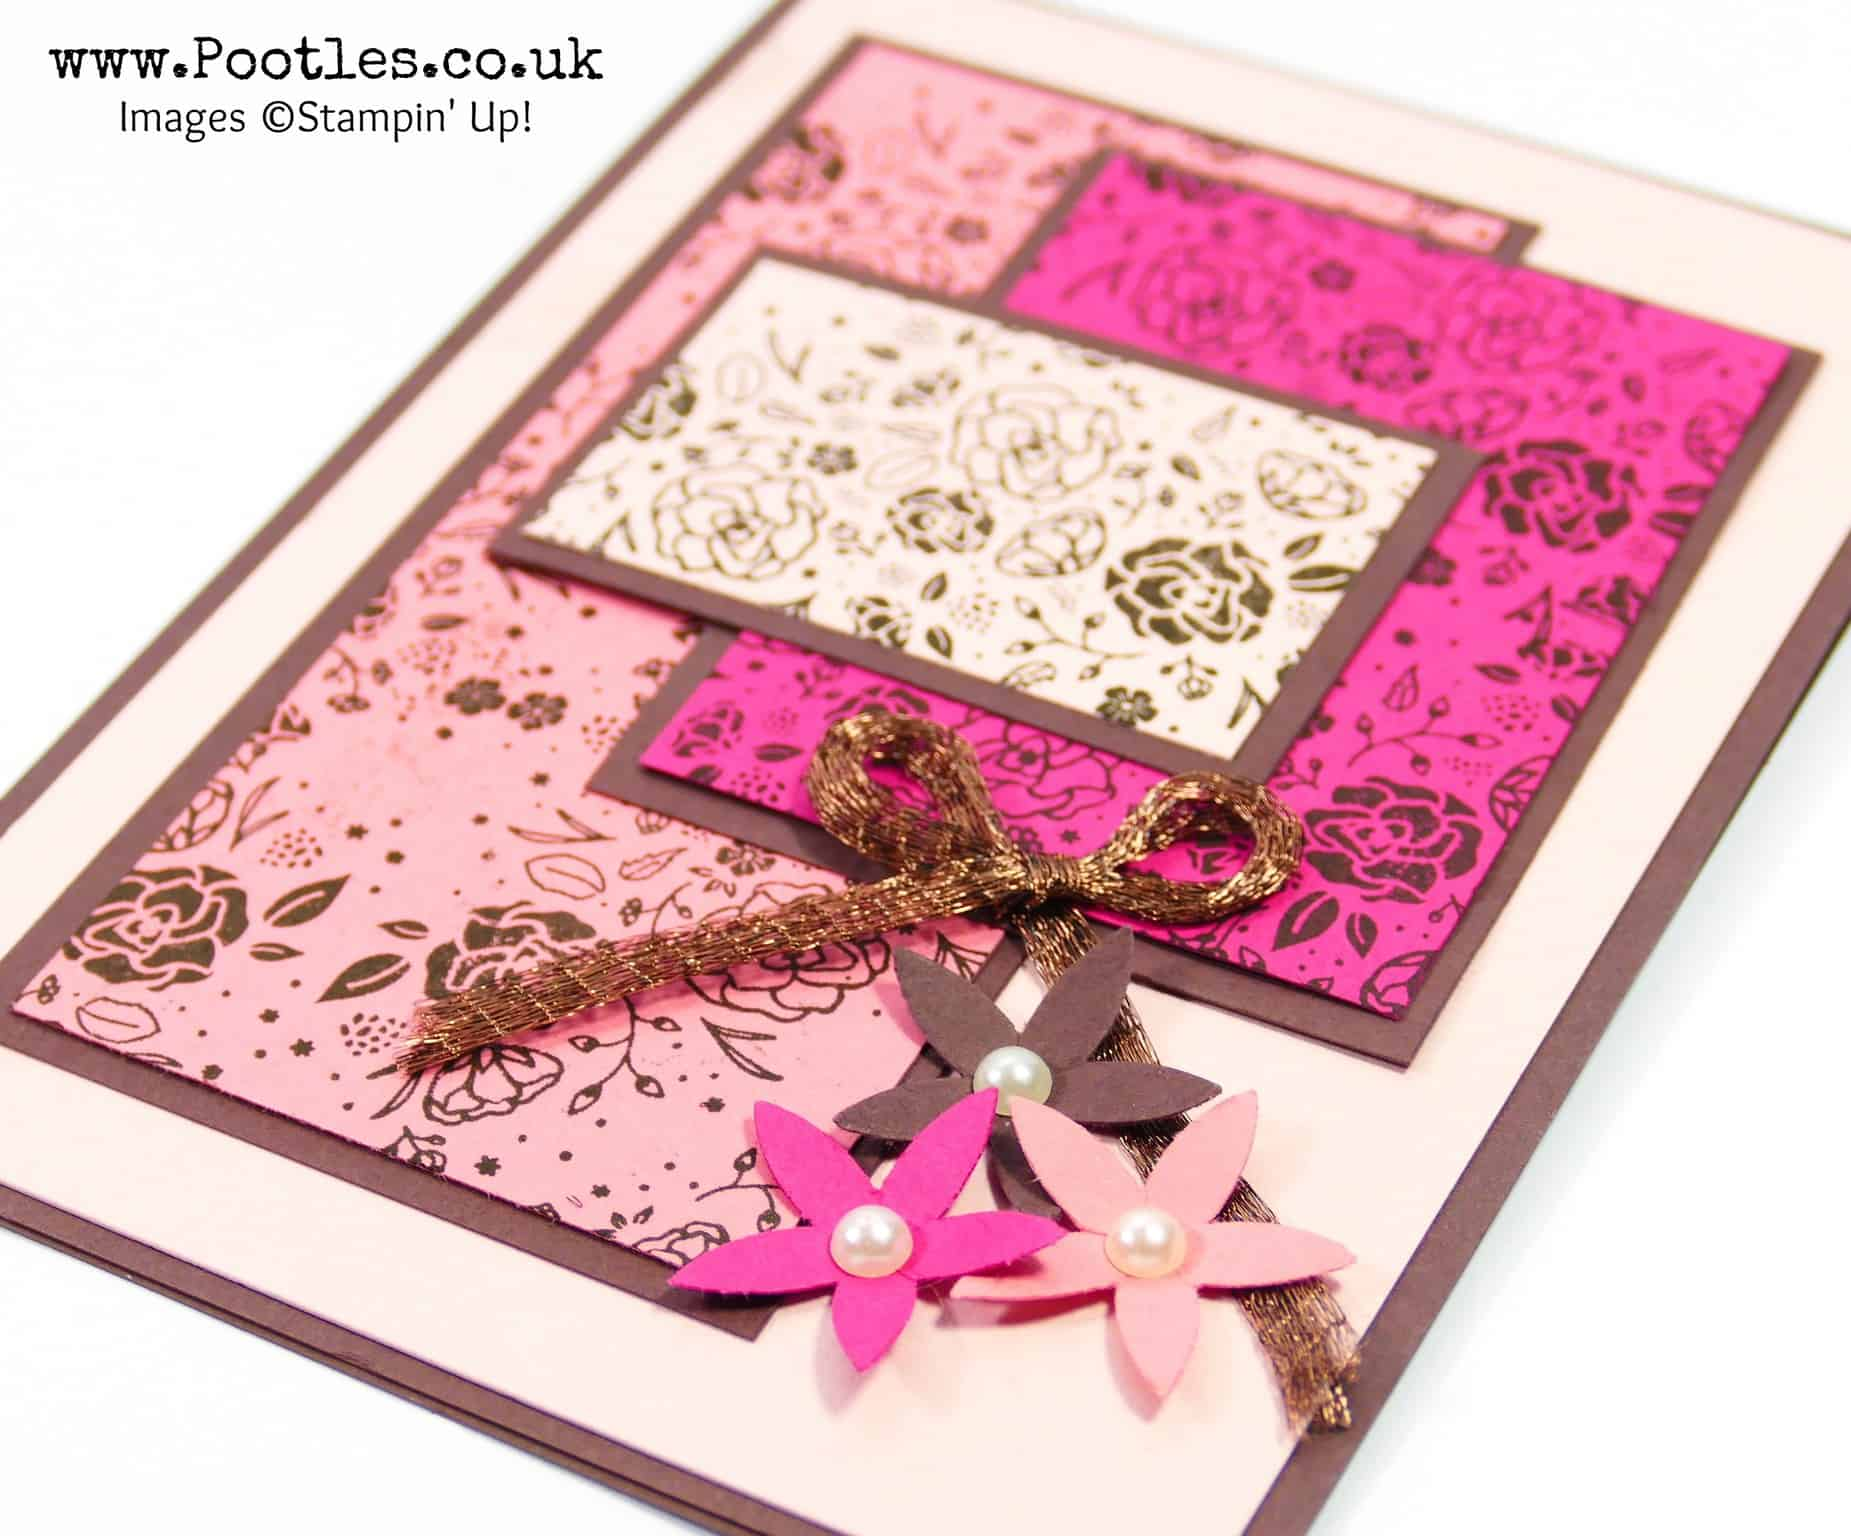 Wood Words Pinked and Floral!